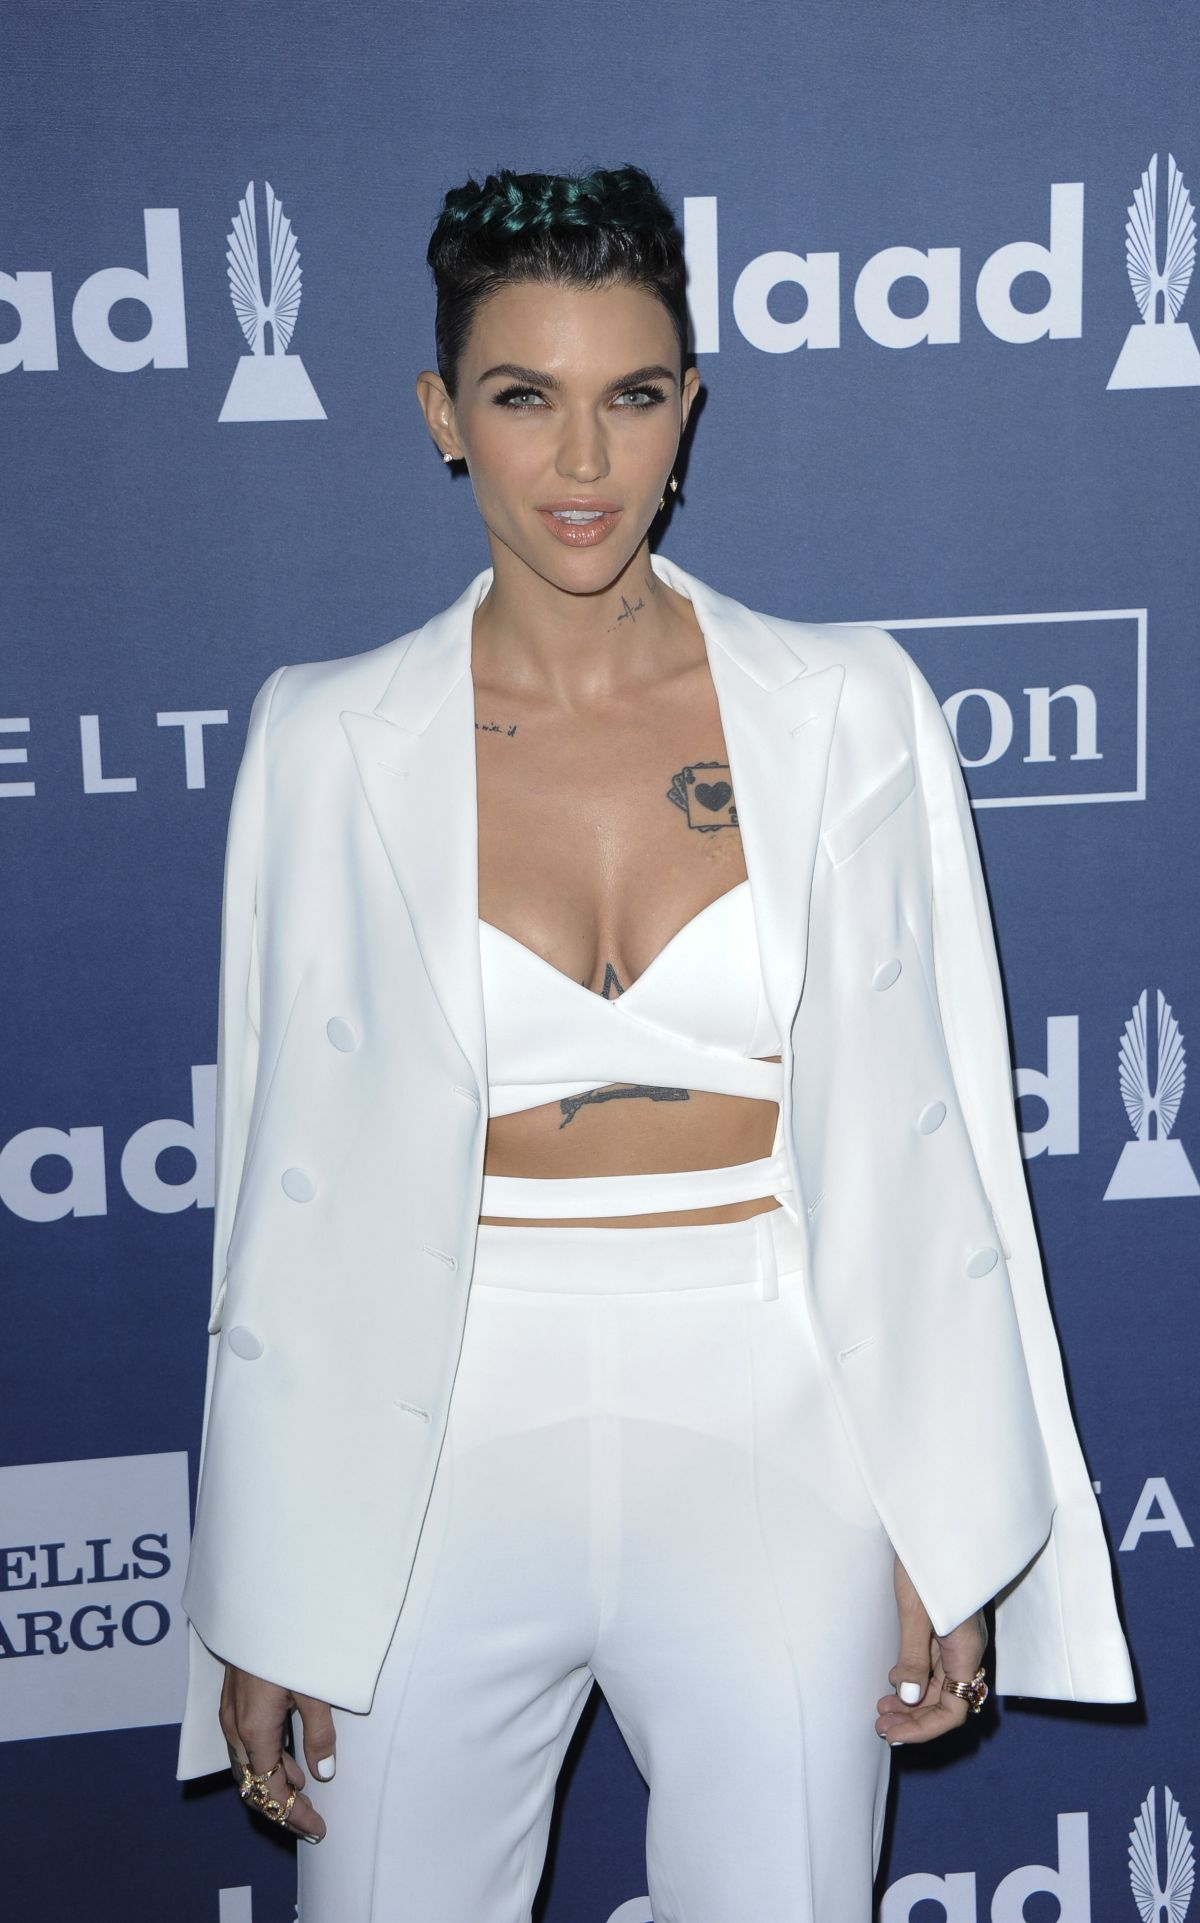 RUBY ROSE at 2016 Glaad Media Awards in Beverly Hills 04/02/2016